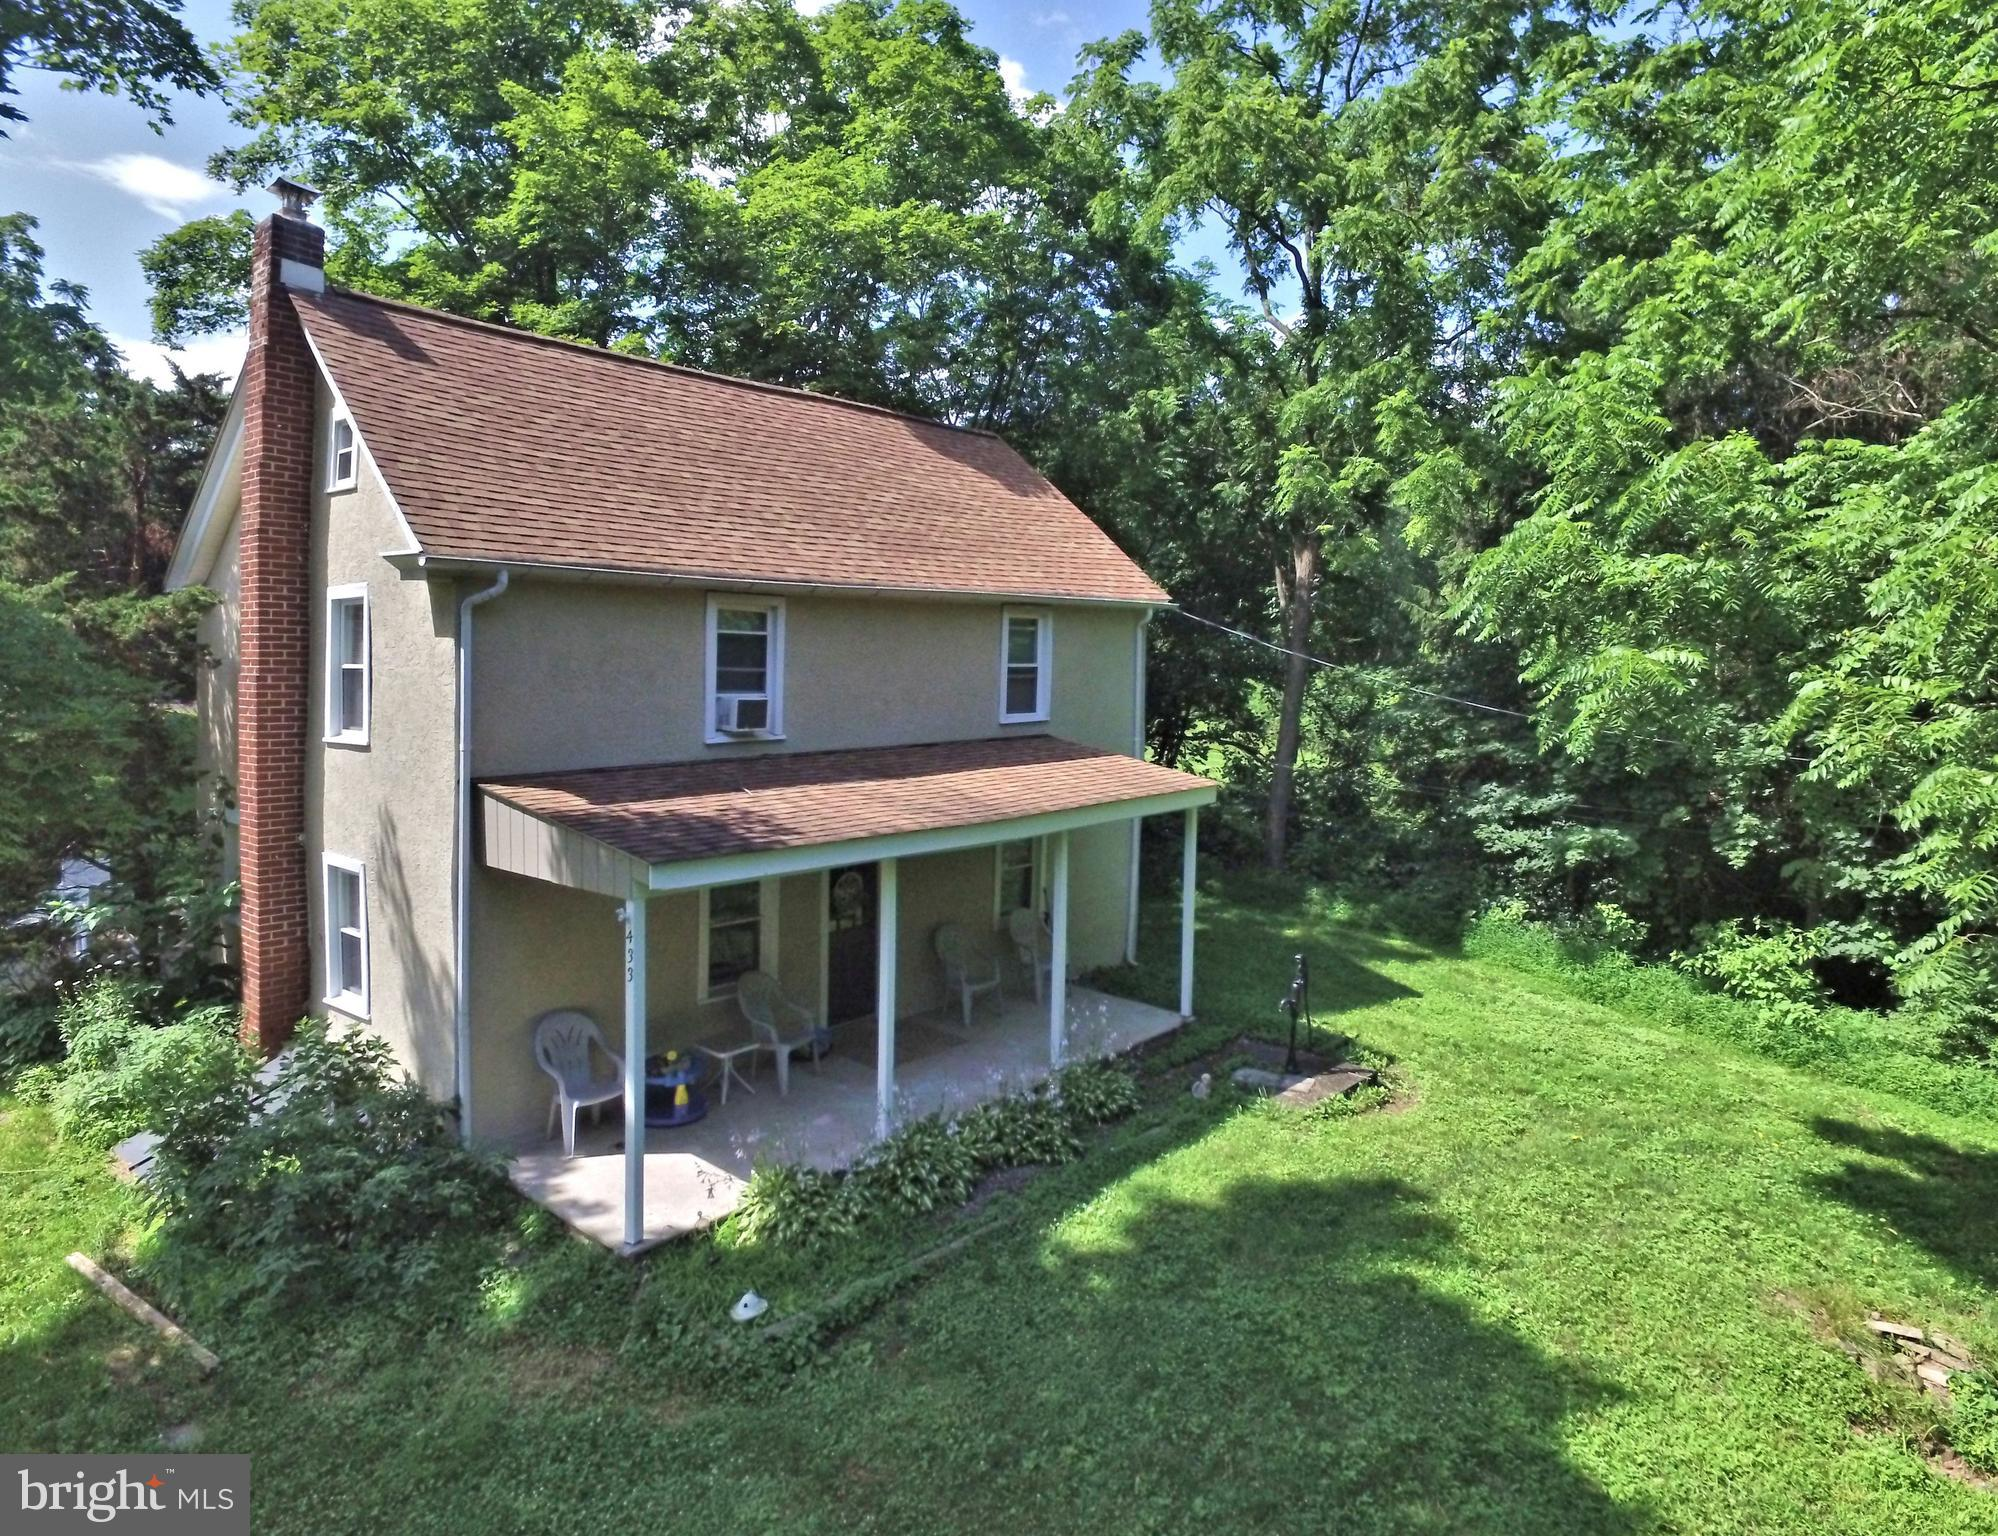 431 INDIAN CREEK ROAD, HARLEYSVILLE, PA 19438